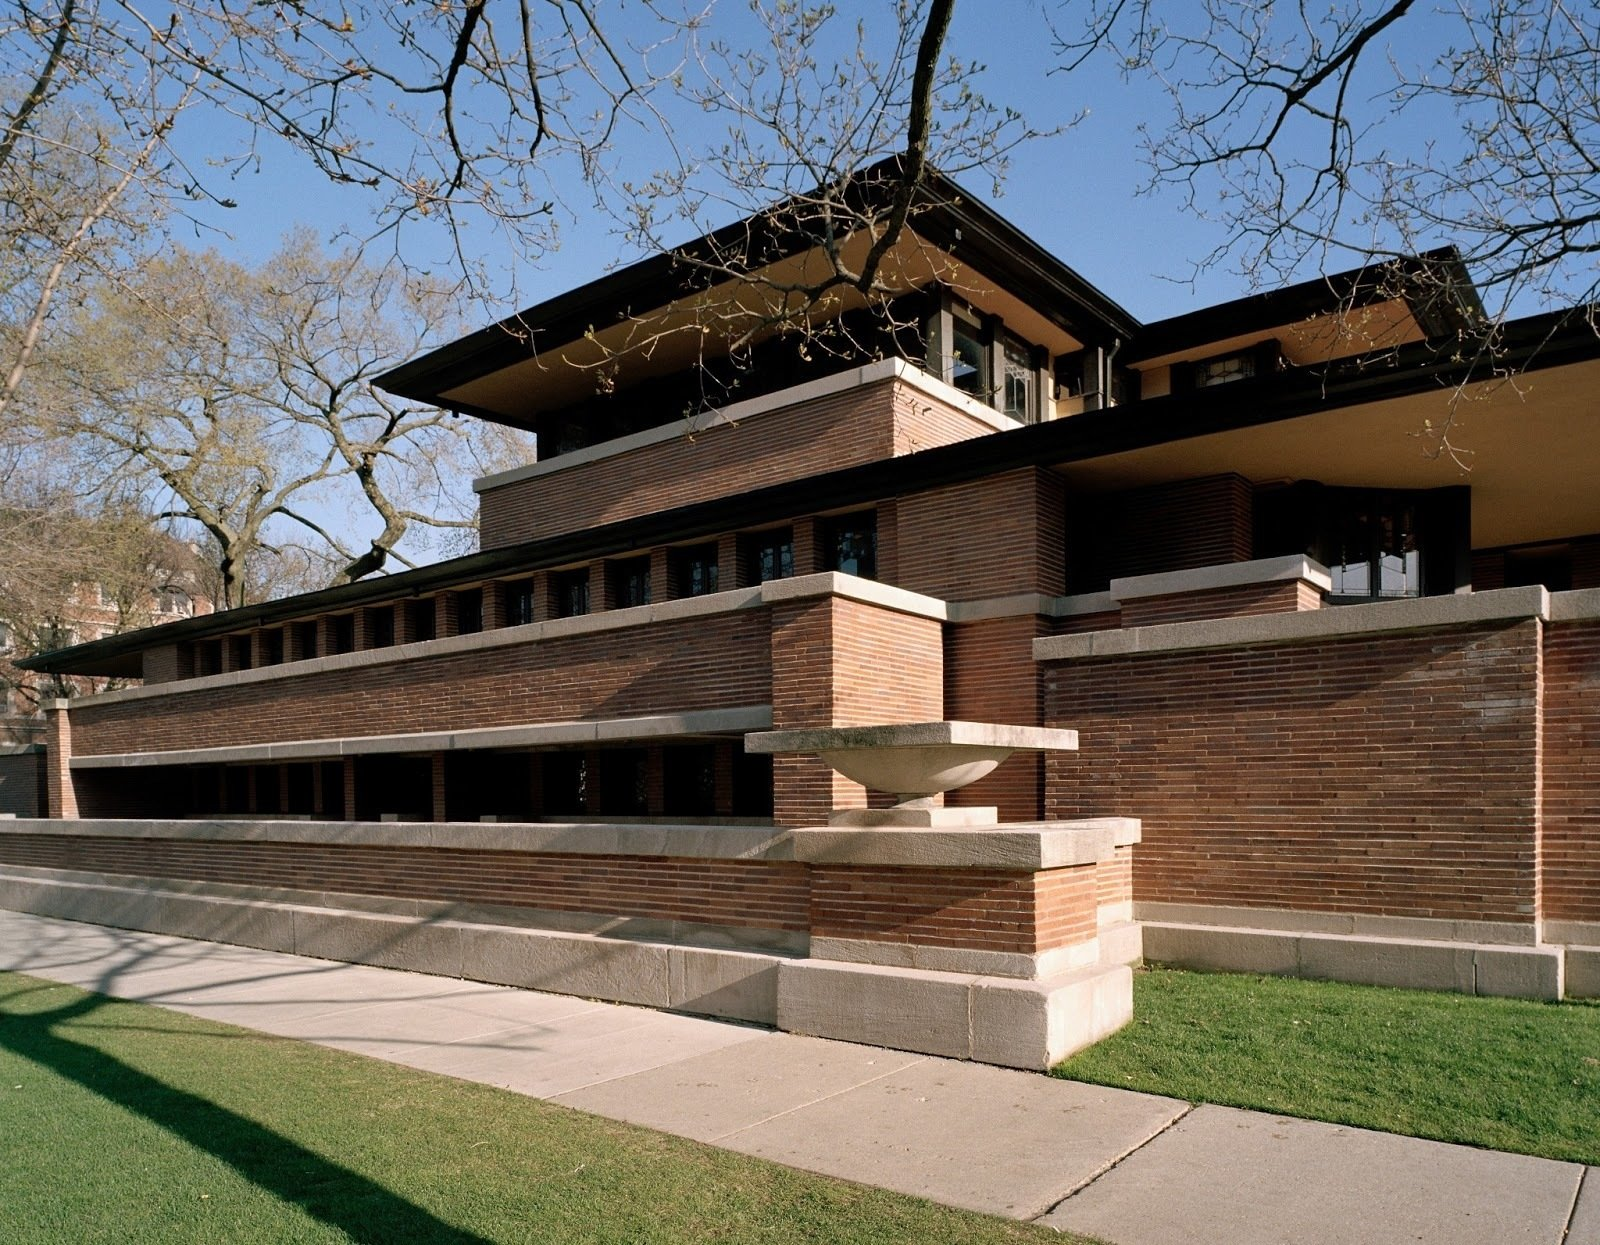 "Robie House, Chicago, Illinois (1910)""Early in life I had to choose between honest arrogance and hypocritical humility. I chose honest arrogance."" It should come as no surprise who uttered those words—the architect of the famed Robie House, Frank Lloyd Wright. The residence, with its tight recessed entry leading to dramatic light-filled openness, seamless space unencumbered by needless partitions, continuous bands of windows, its horizontal, low-slung form, and overhanging eaves, is what the architect called ""a cornerstone of American architecture.""  Tiny Homes by Scott Saunders from Buildings That Changed America"